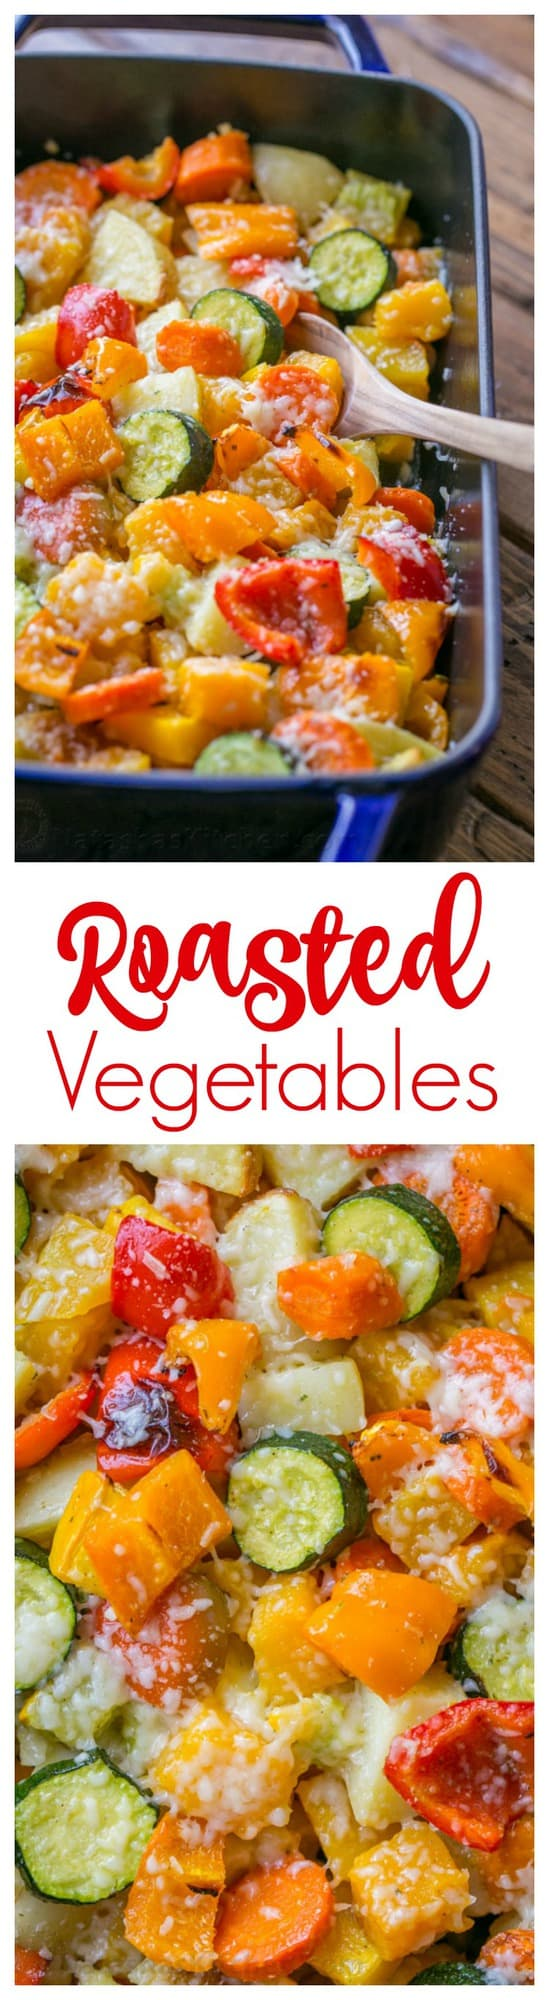 Roasted Vegetables uses the best of Fall veggies: butternut squash, potatoes, zucchini, carrots and bell peppers. Perfect holiday side dish!   natashaskitchen.com